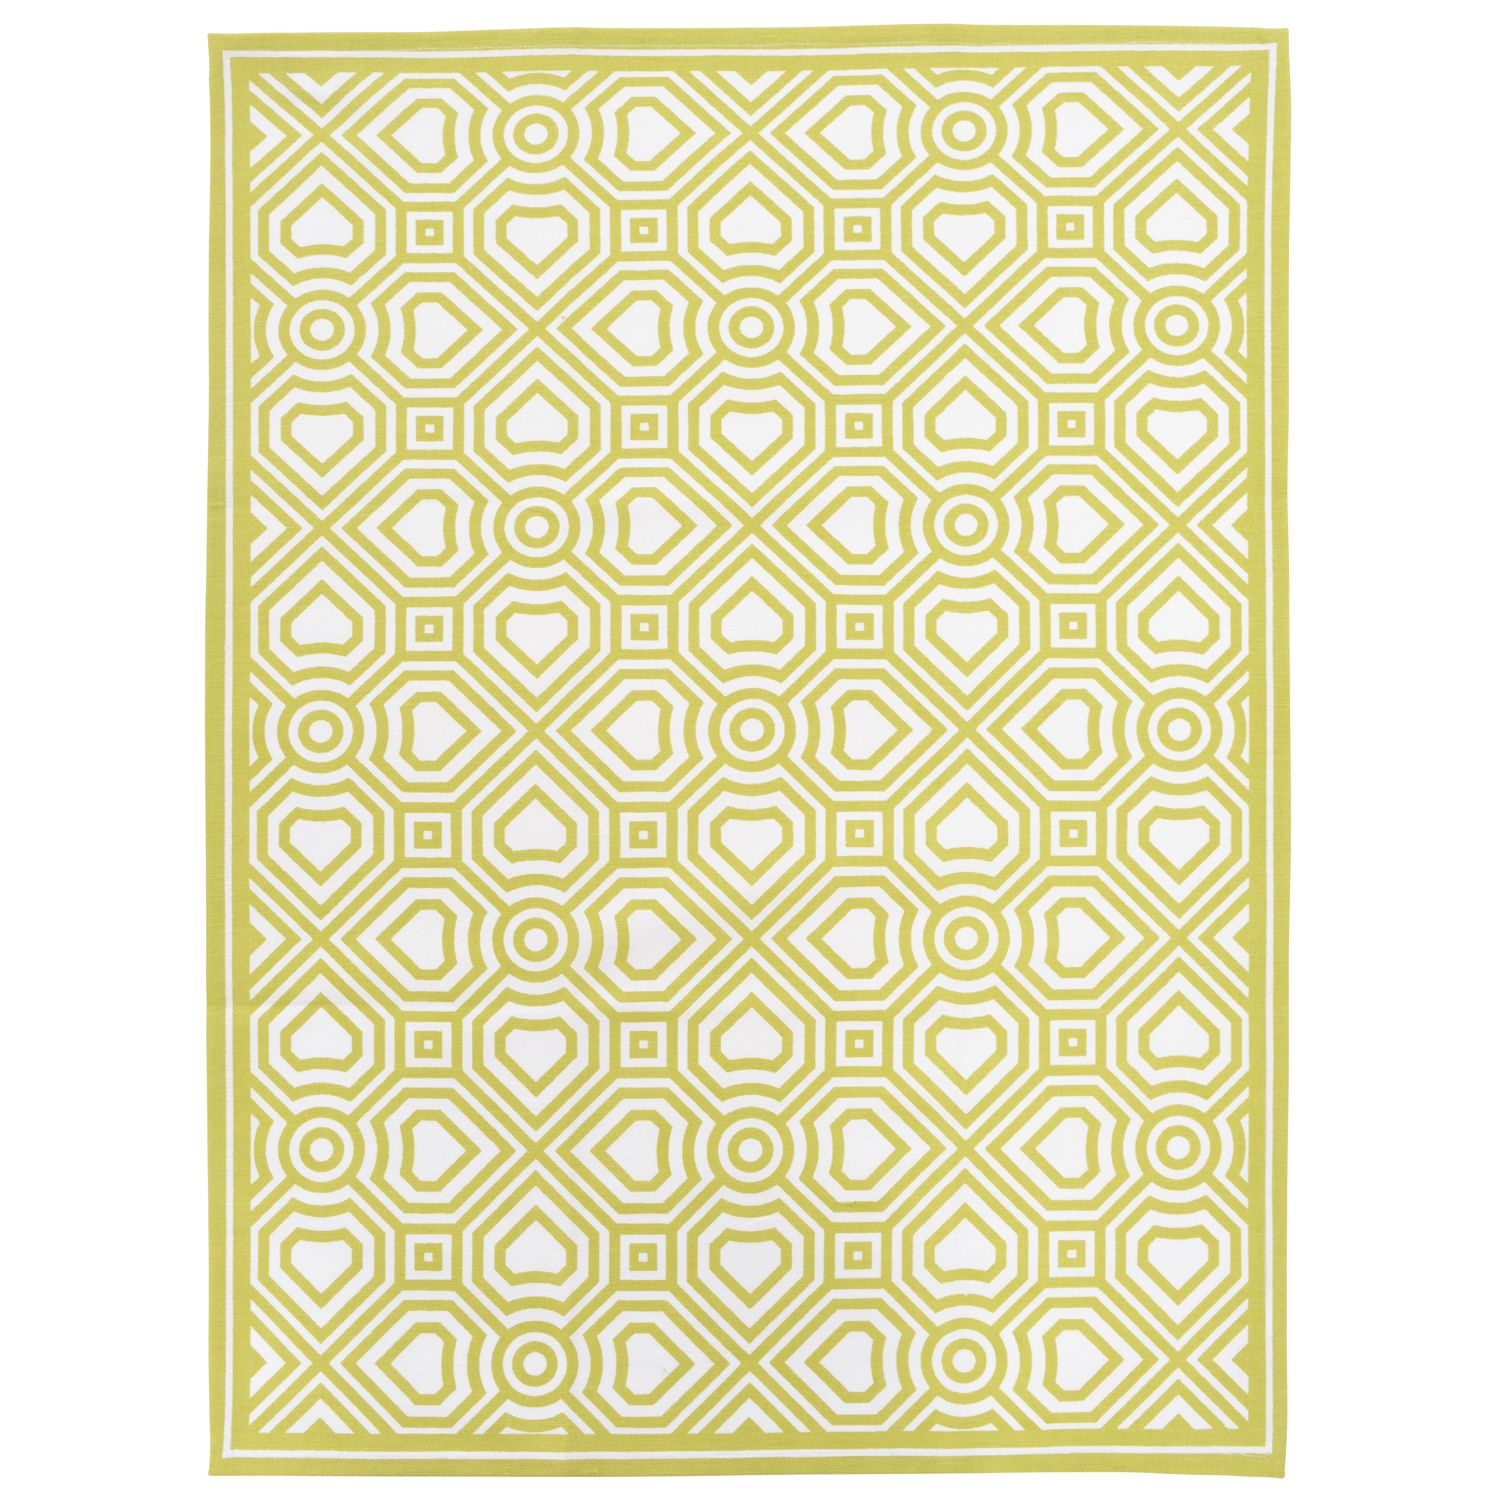 Heal S 1810 Lattice Parquet Green Set Of Two Tea Towels Contemporary Modern Furniture Colorful Furniture Tea Towels